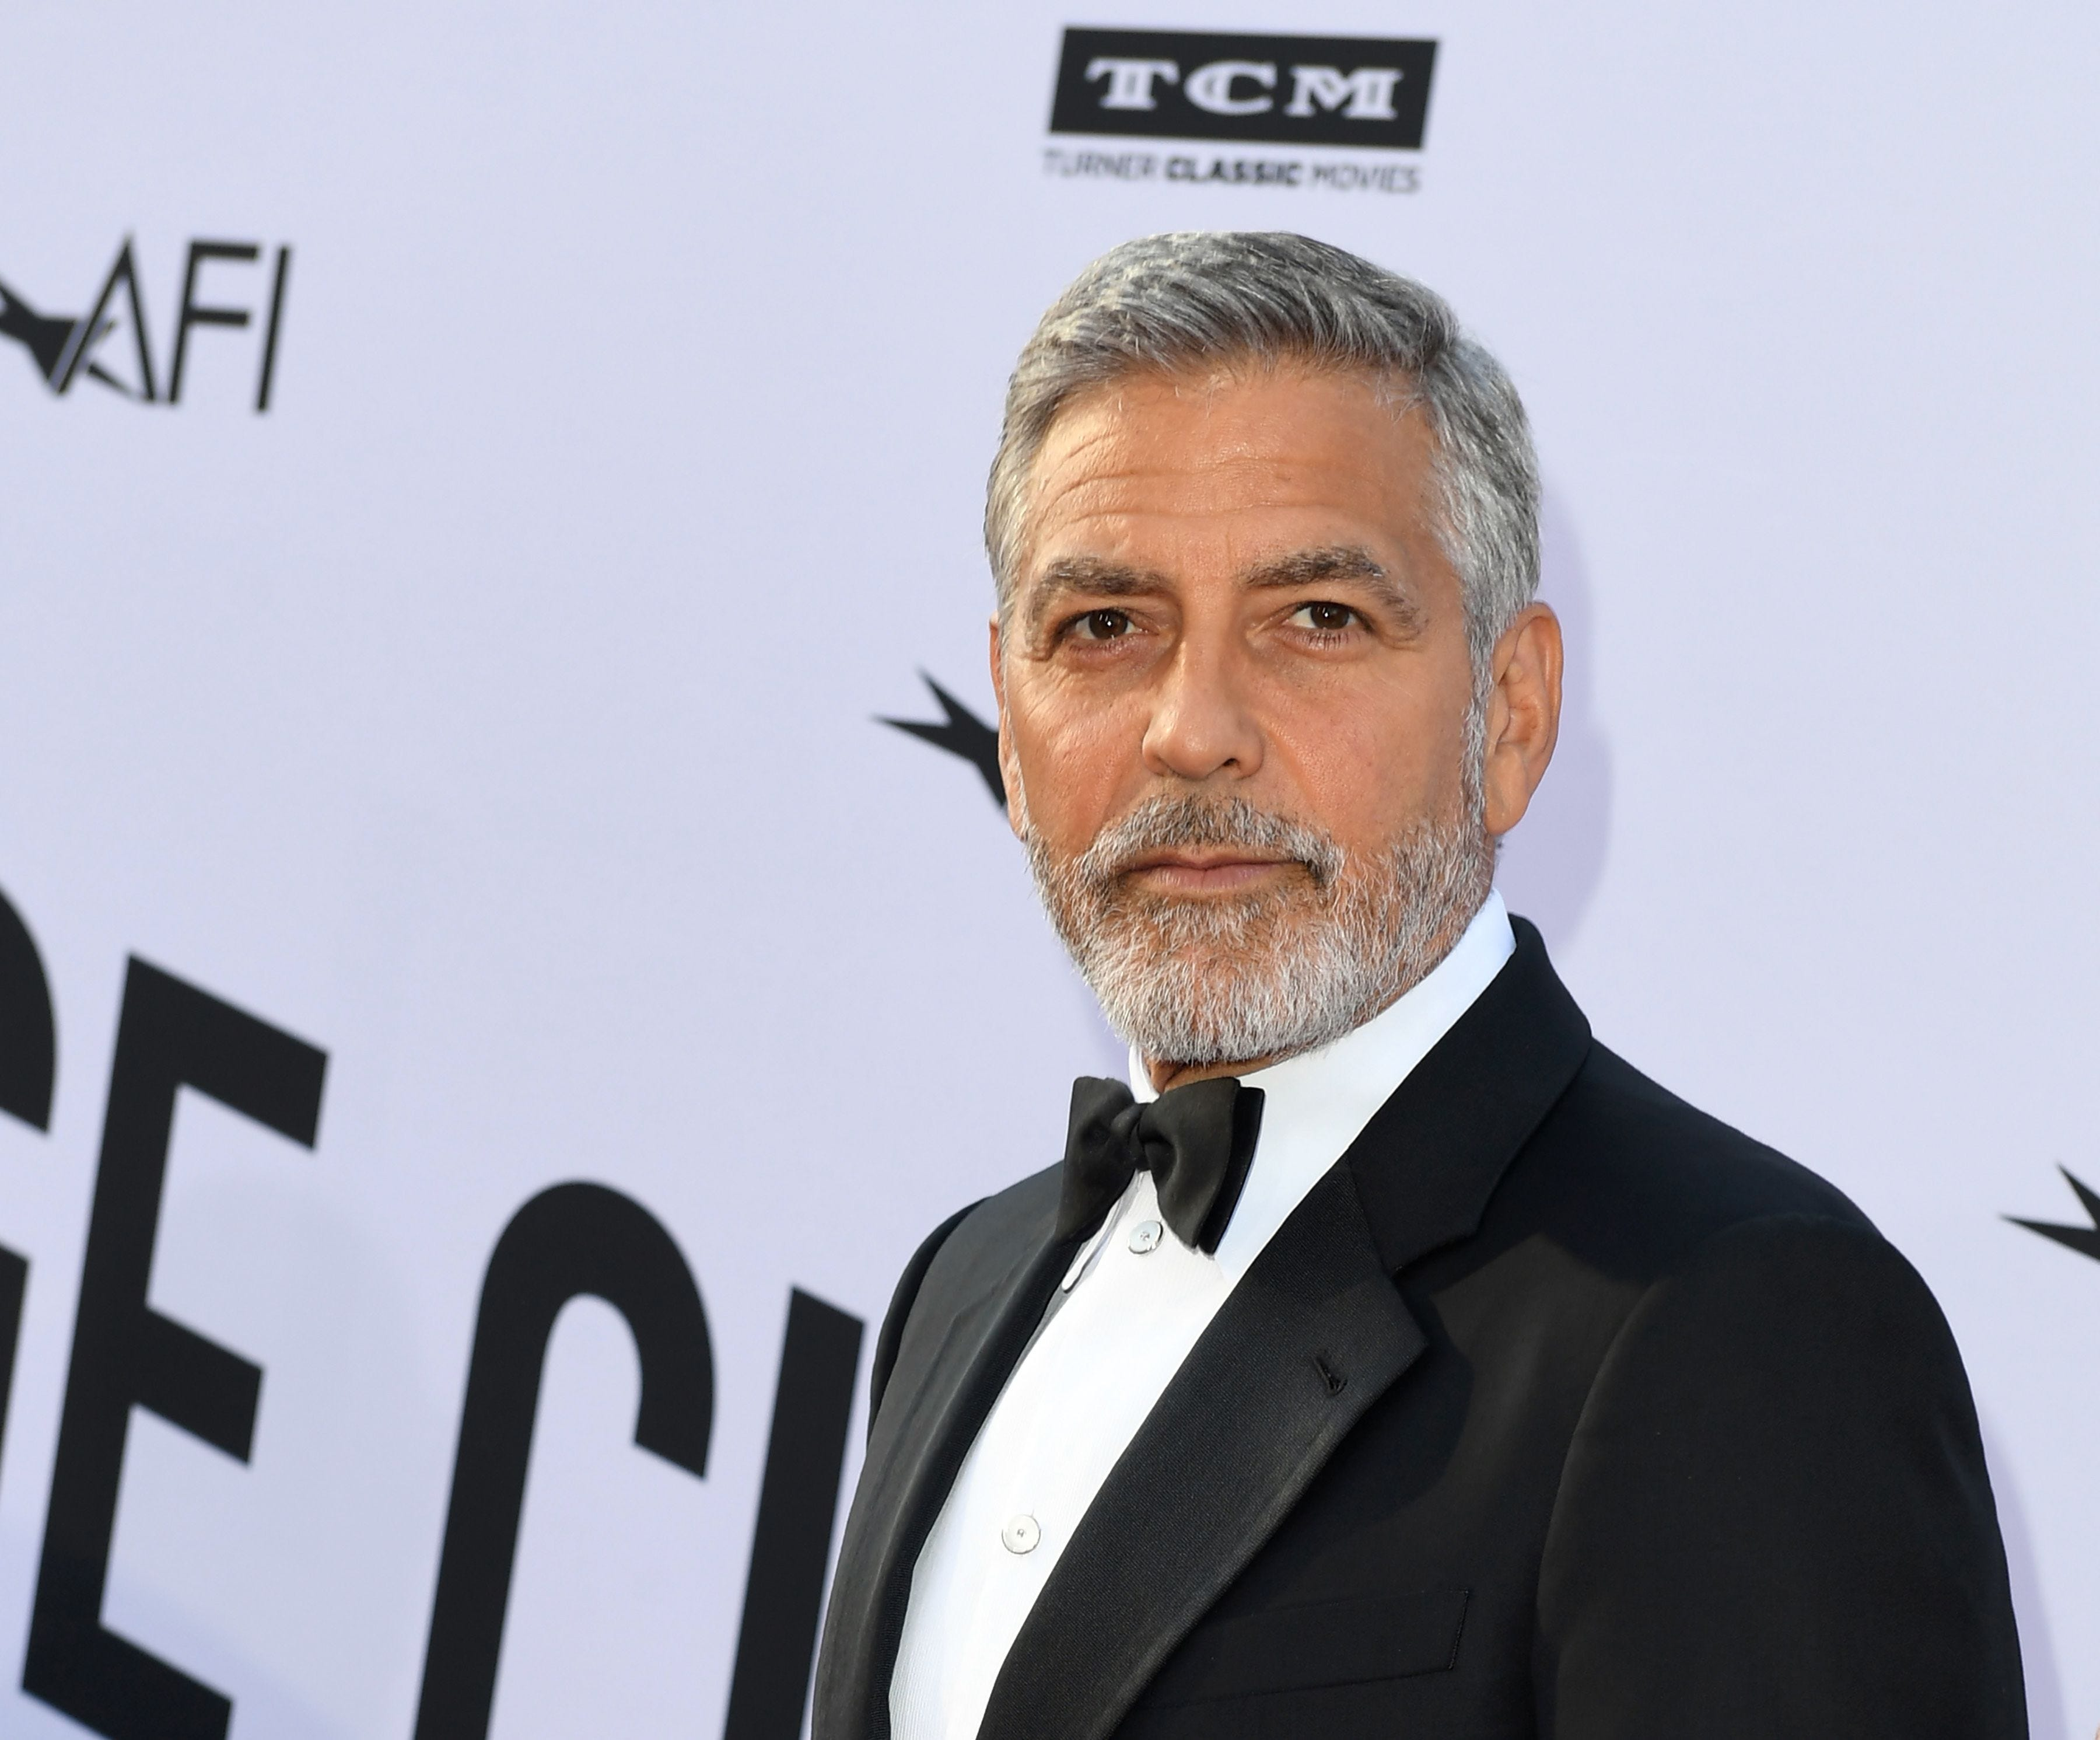 George Clooney Dwayne Johnson Top Forbes Highest Paid